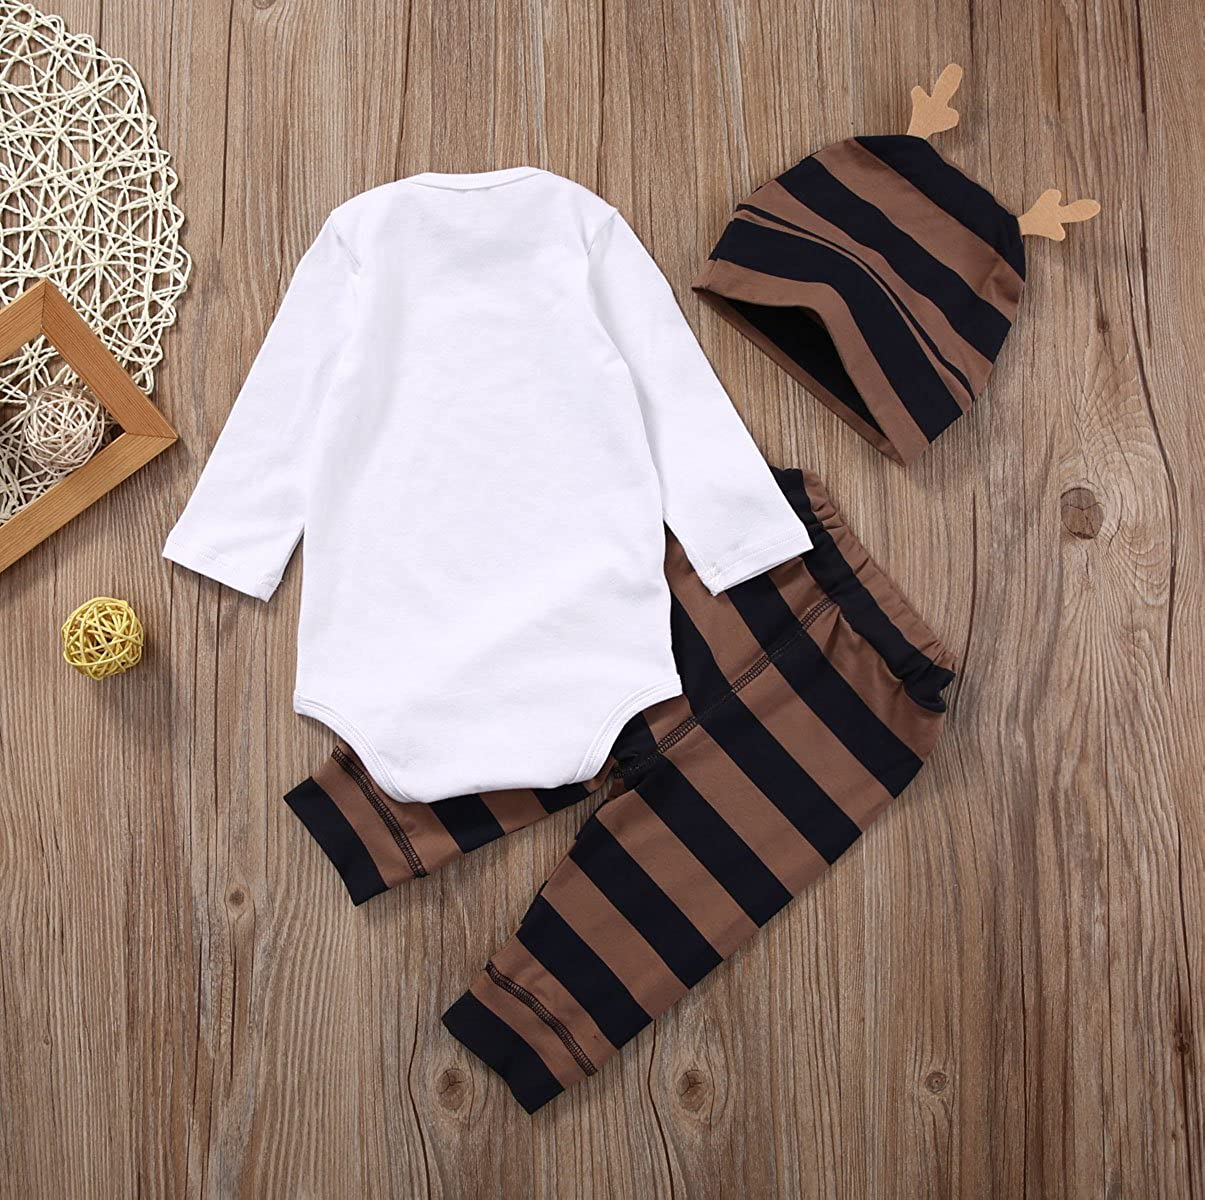 Newborn Infant Baby Girls Funny Clothes 3Pcs Little Moose Romper+Pants+Hat Cute Outfit Set Autumn Winter